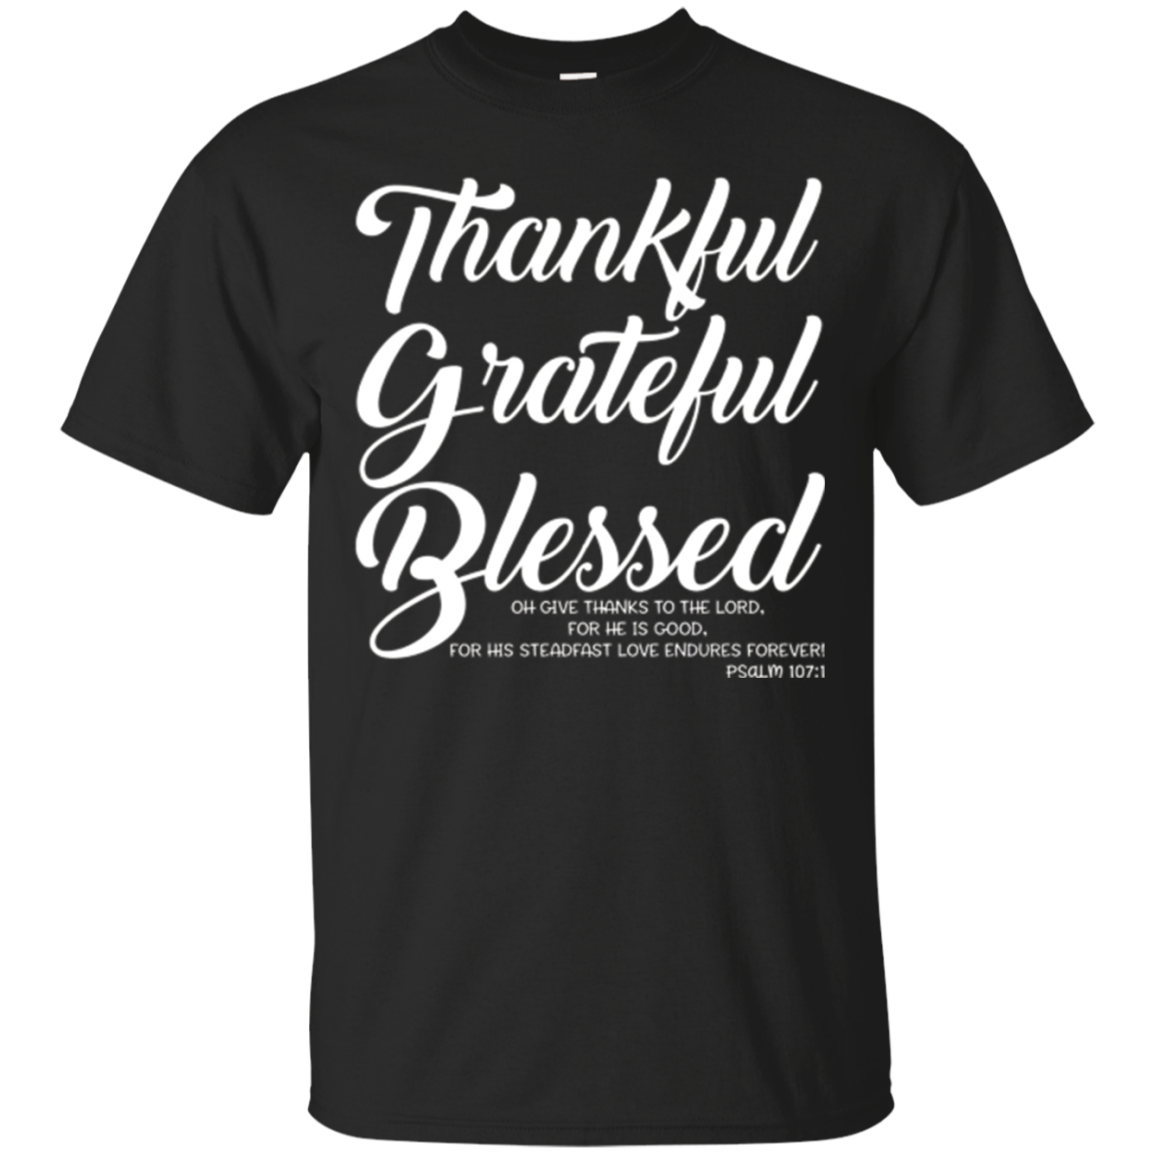 Thankful Grateful Blessed Christian T Shirt Tee